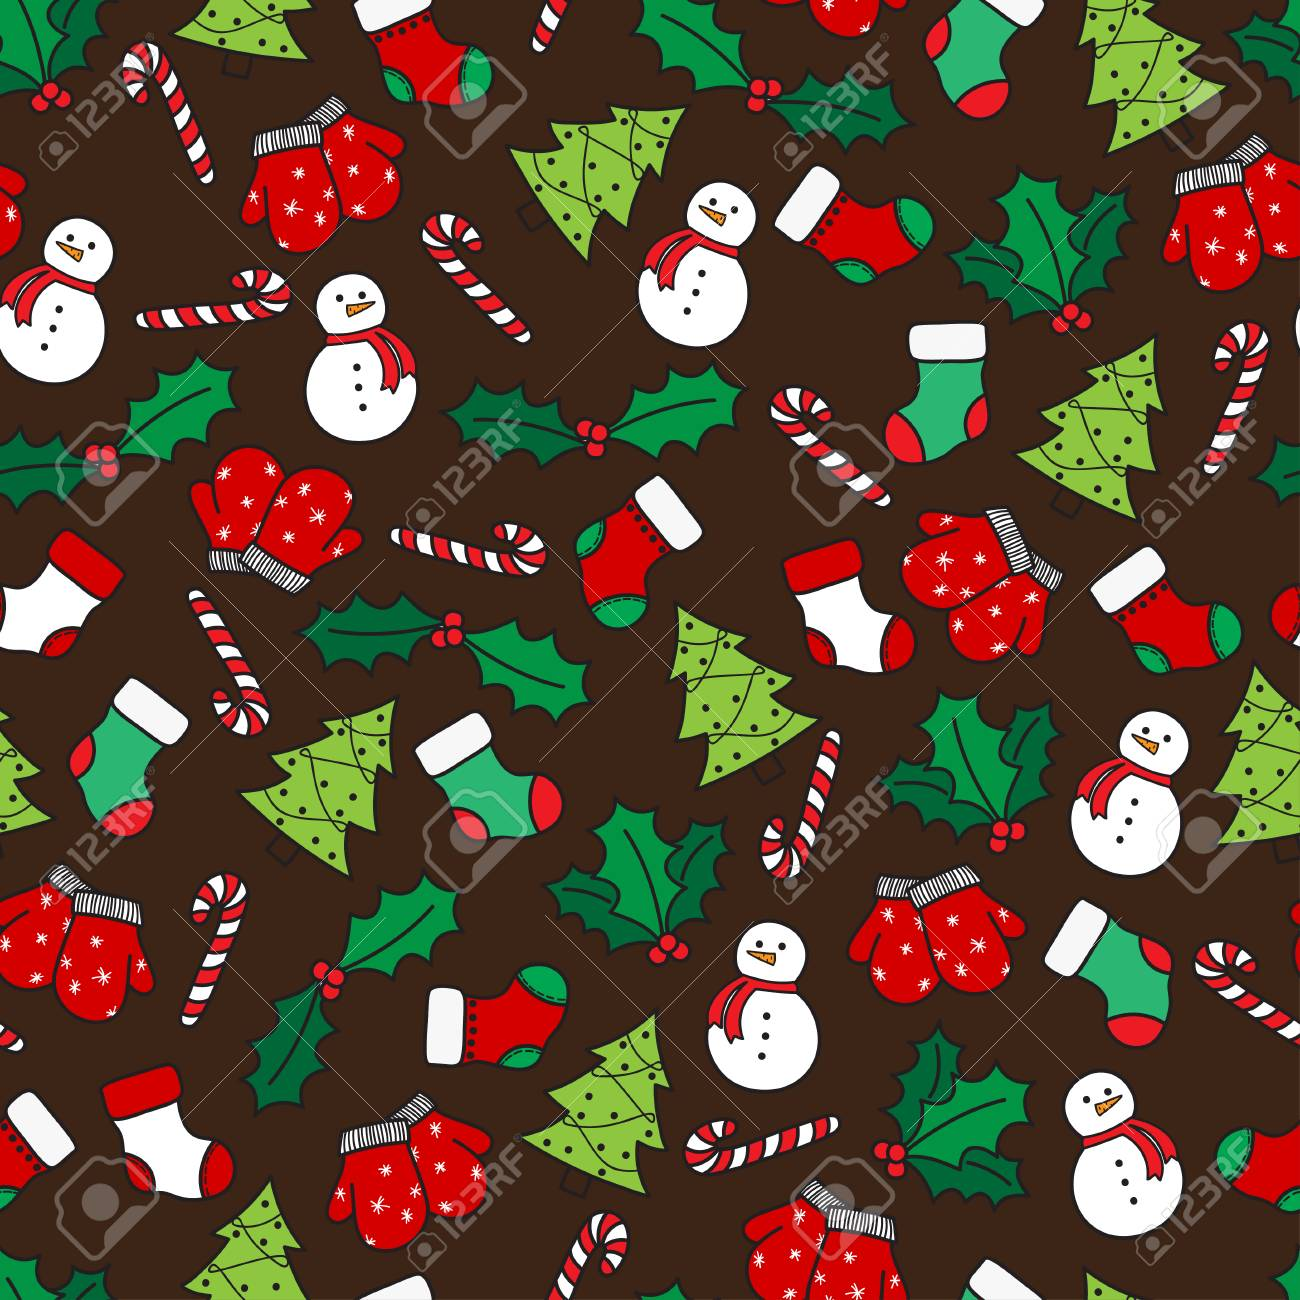 53527293 cartoon christmas seamless pattern with stockings mittens candy cane holly berries snowman and with